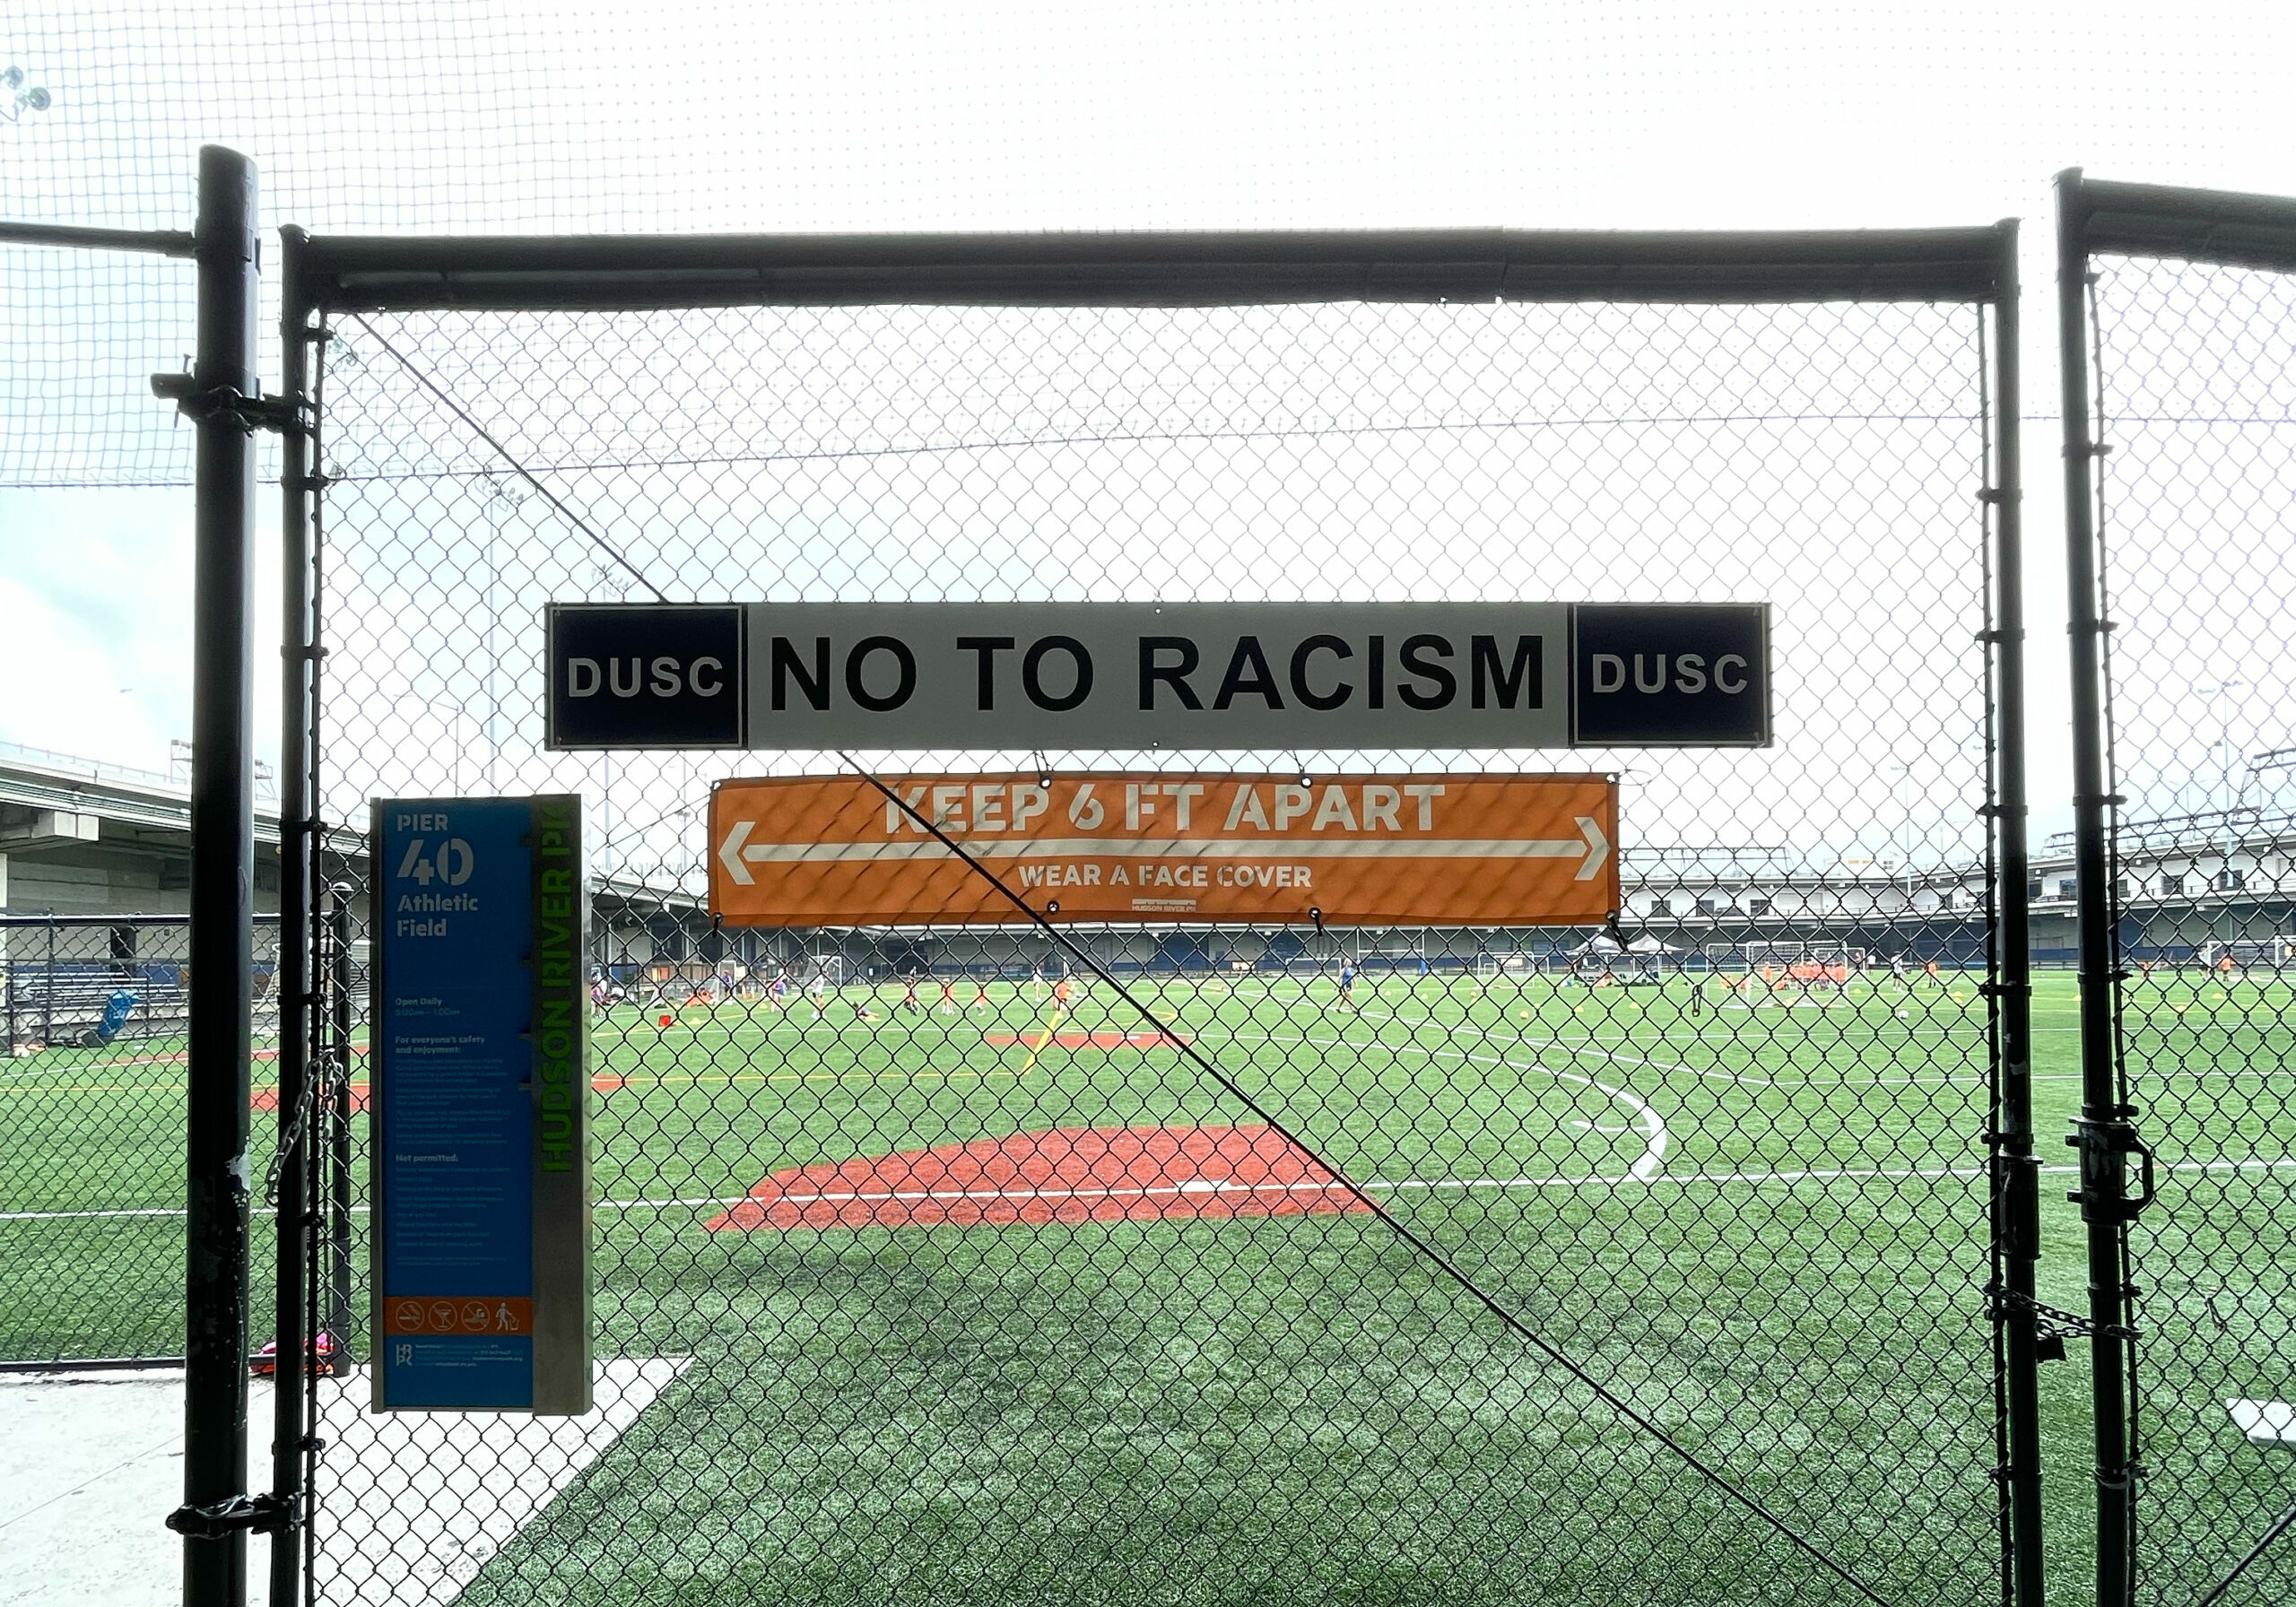 DUSC No to Racism